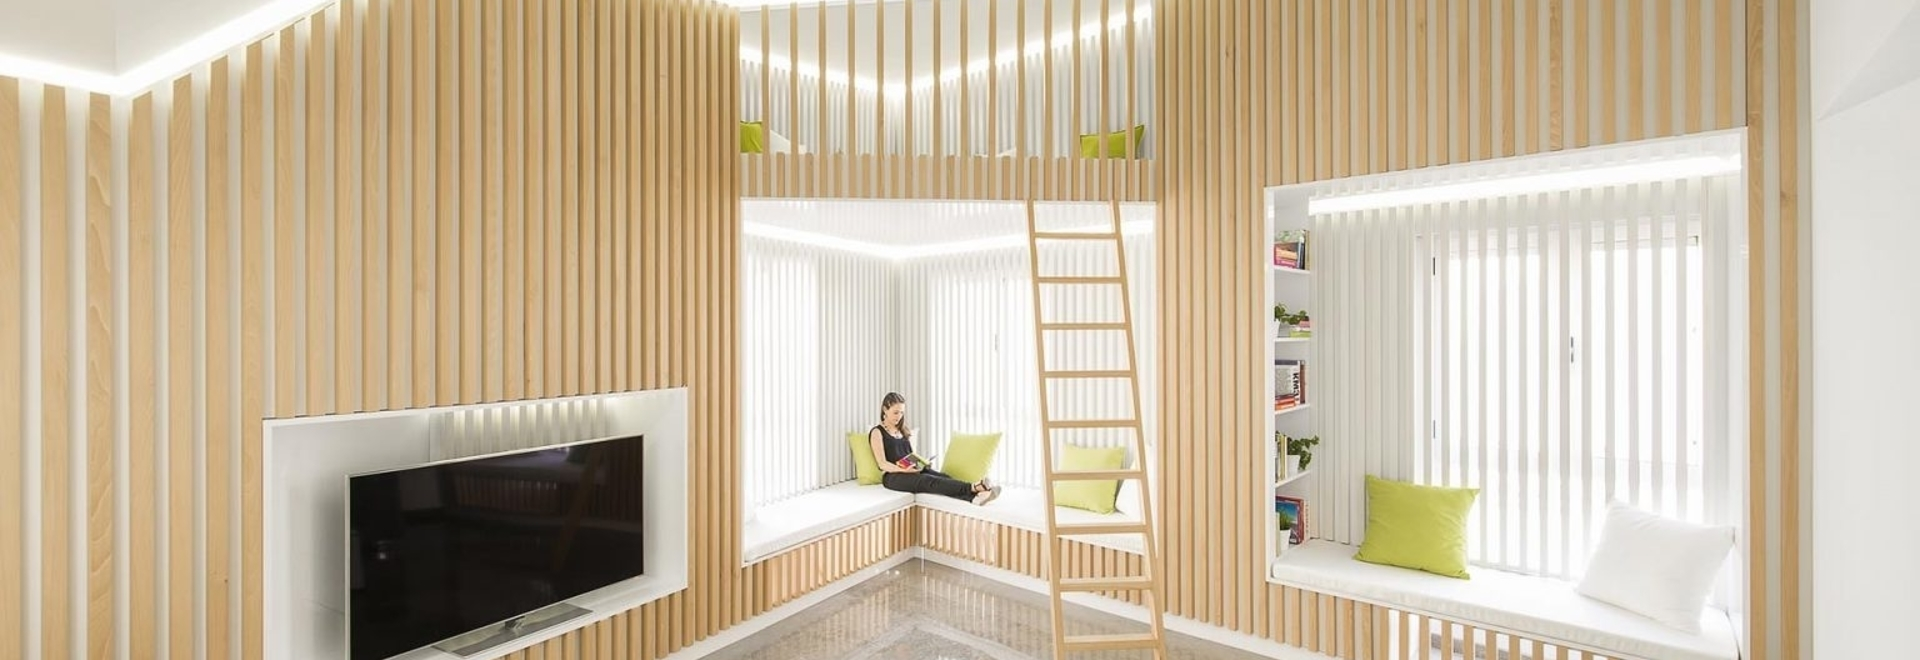 Wood Slats On The Walls Give This Home's Interior A Distinct Look